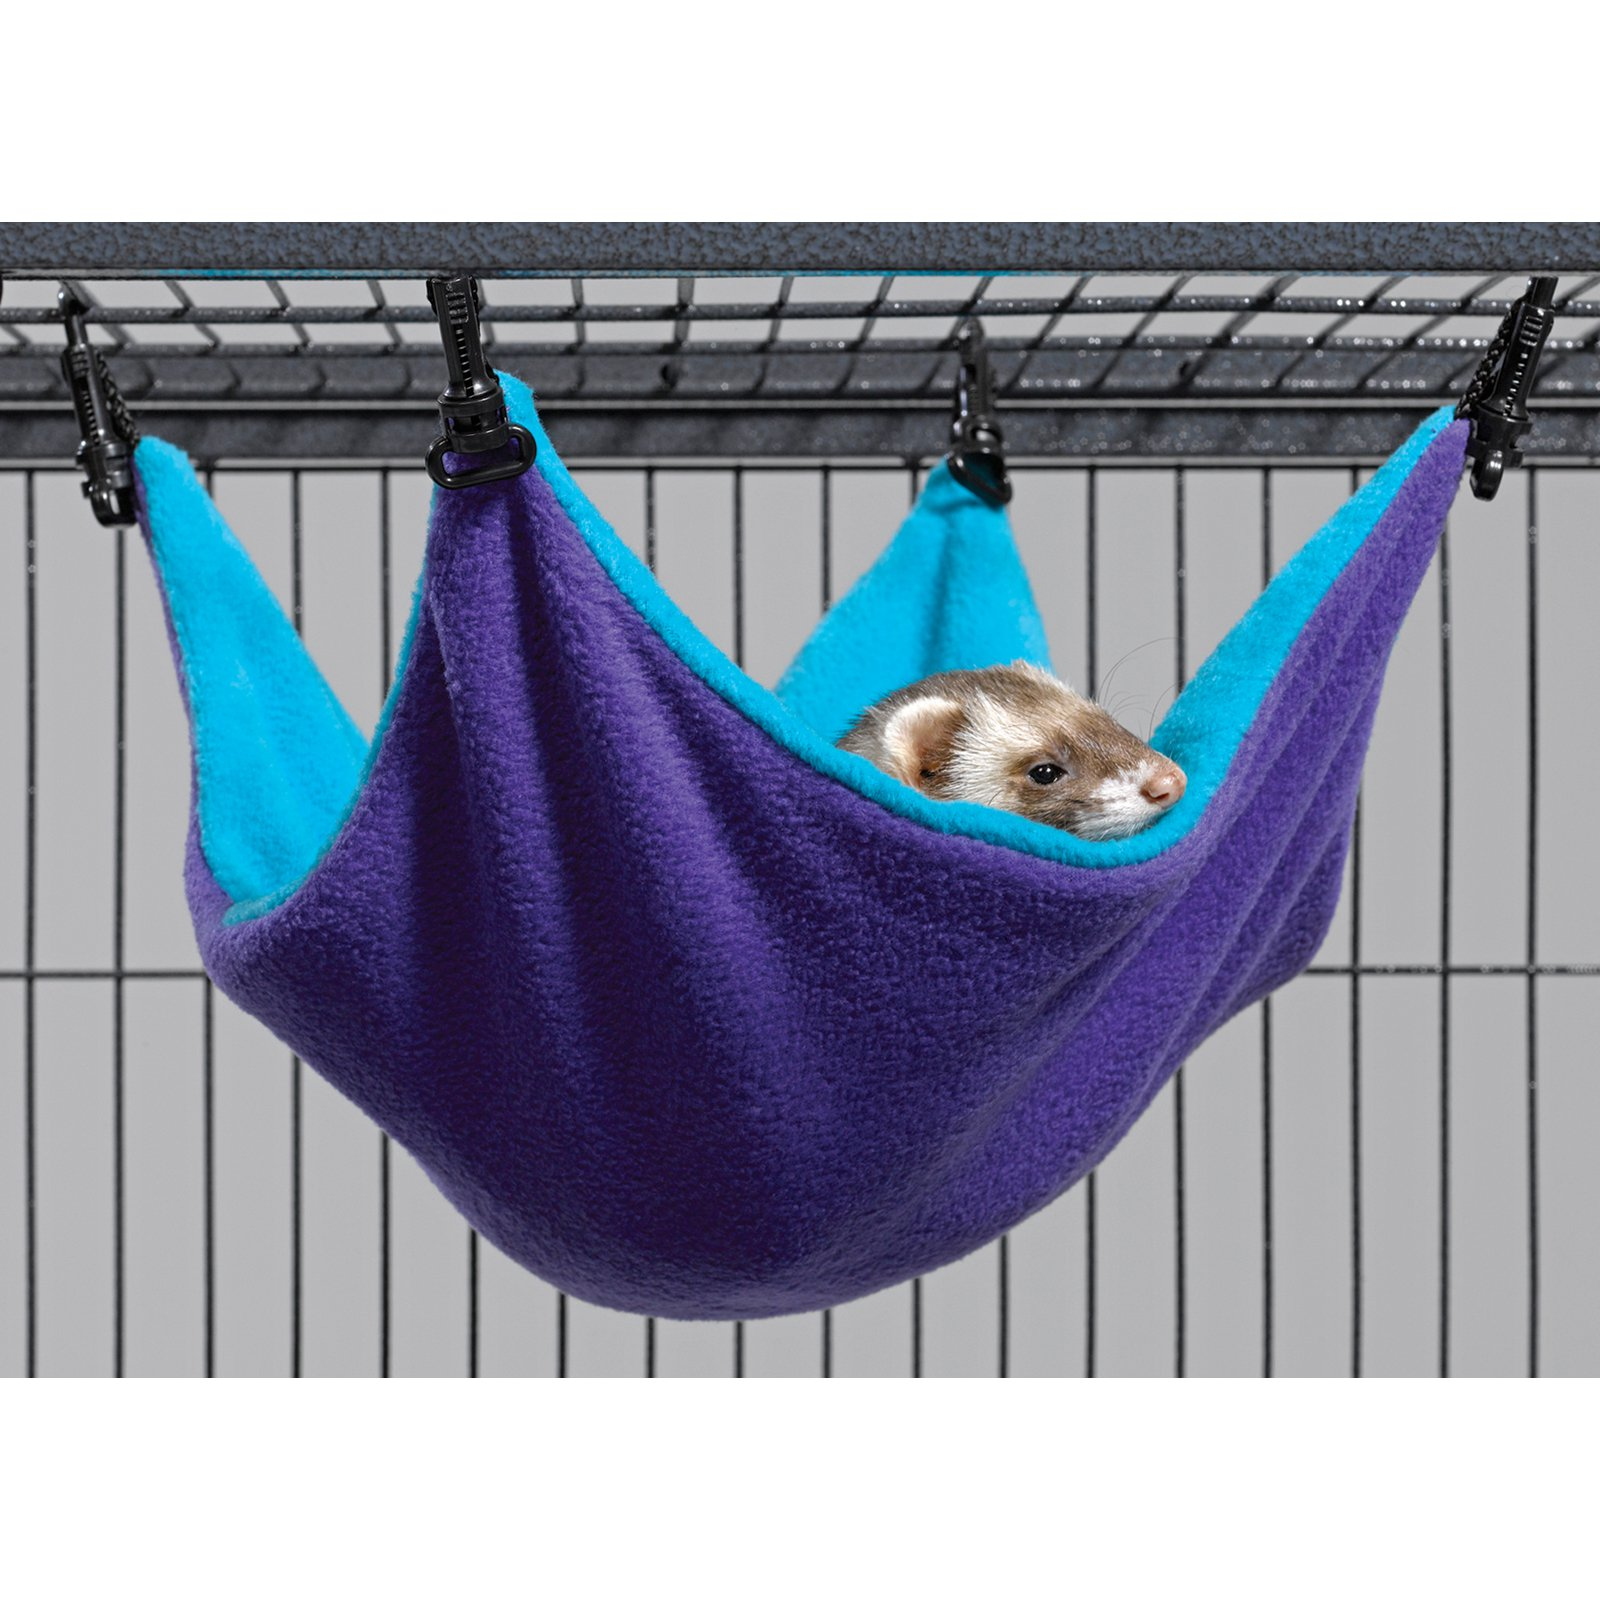 Midwest Homes for Pets Ferret/Critter Nation Accessories Hammock